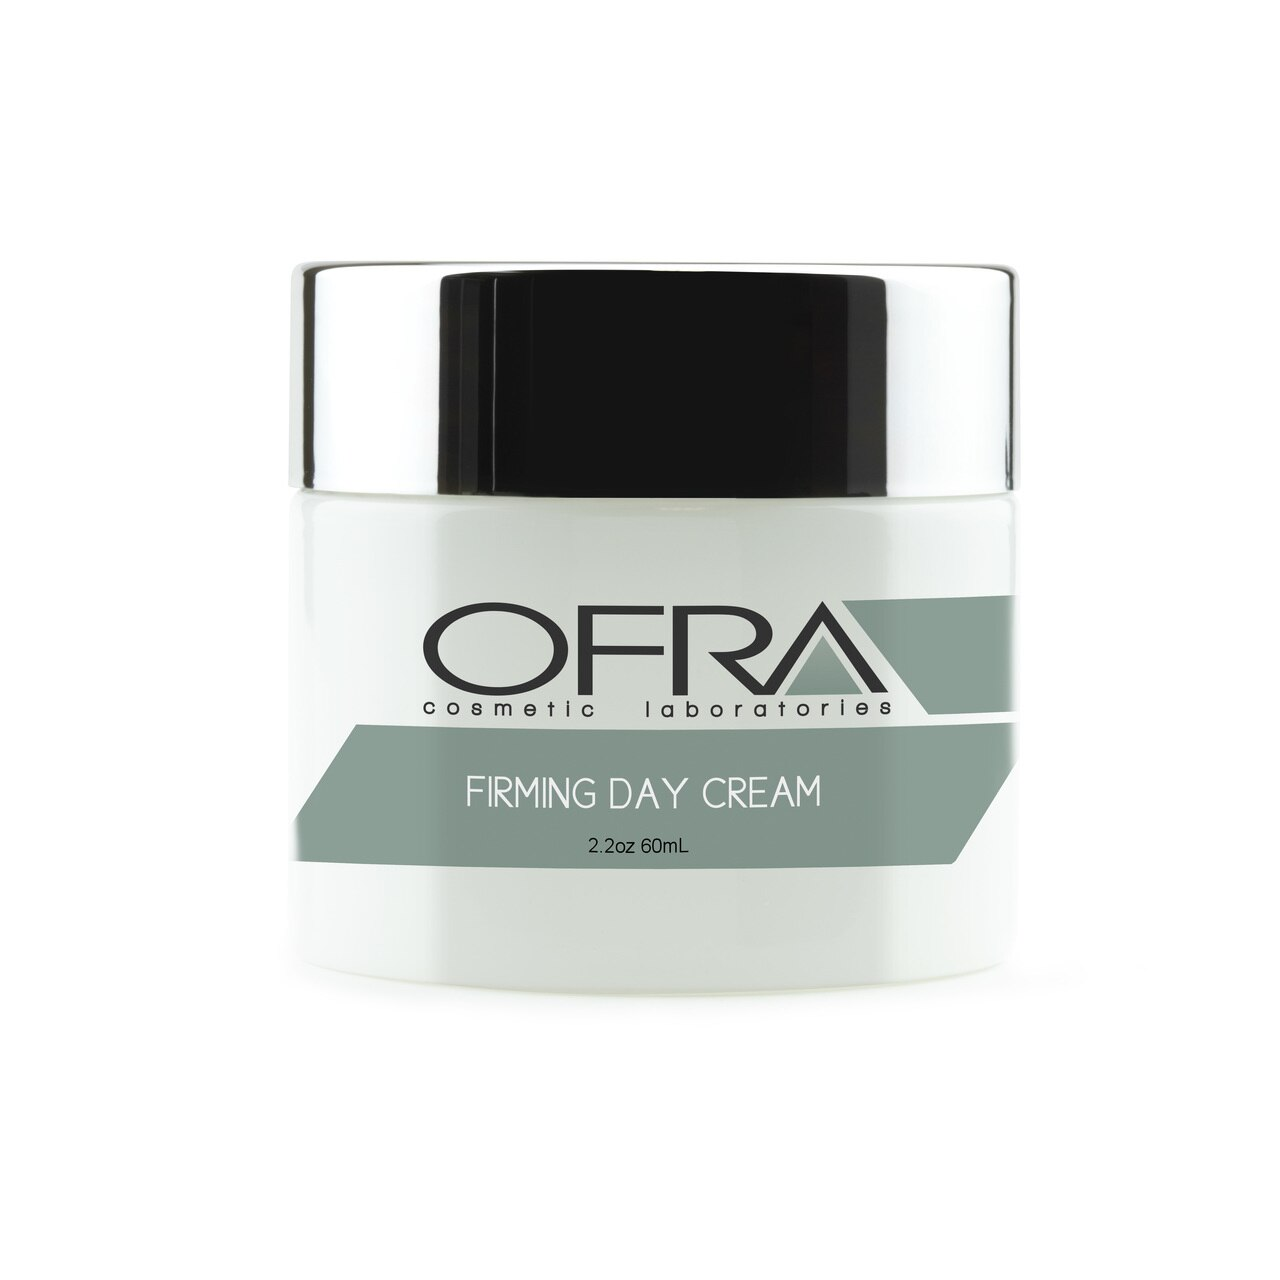 Firming Day Cream